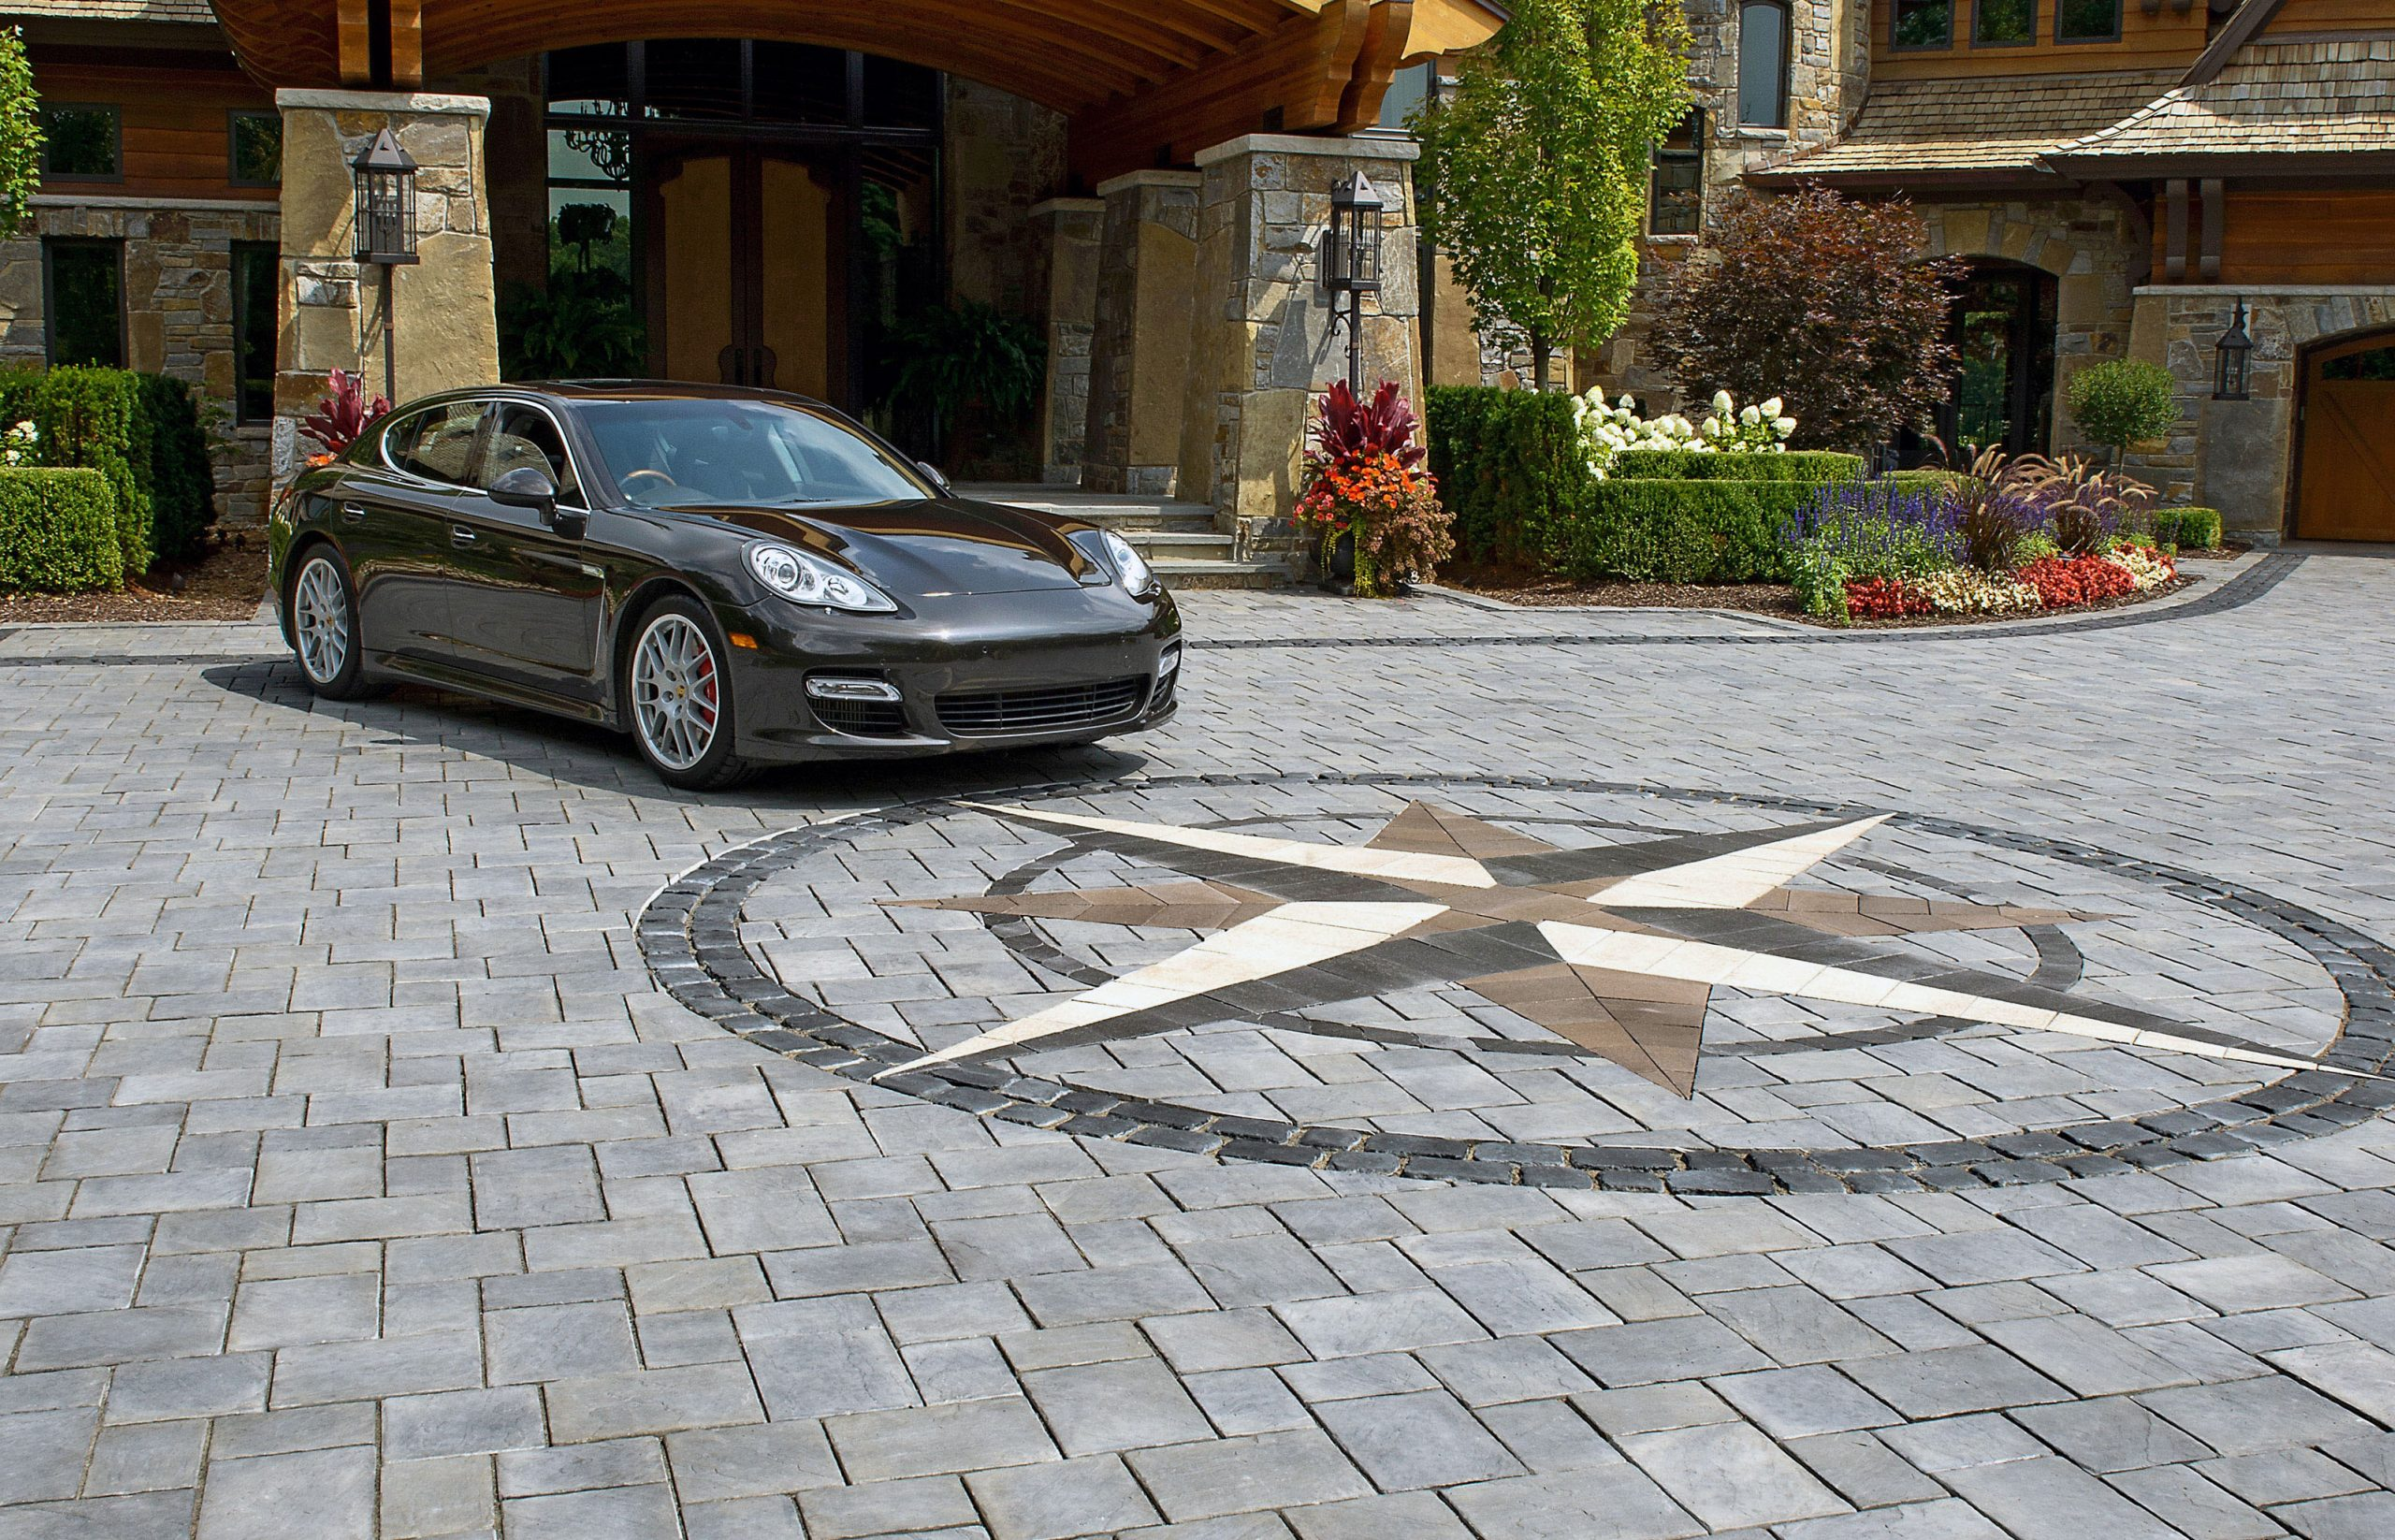 An Essential Aspect of Driveway Paving